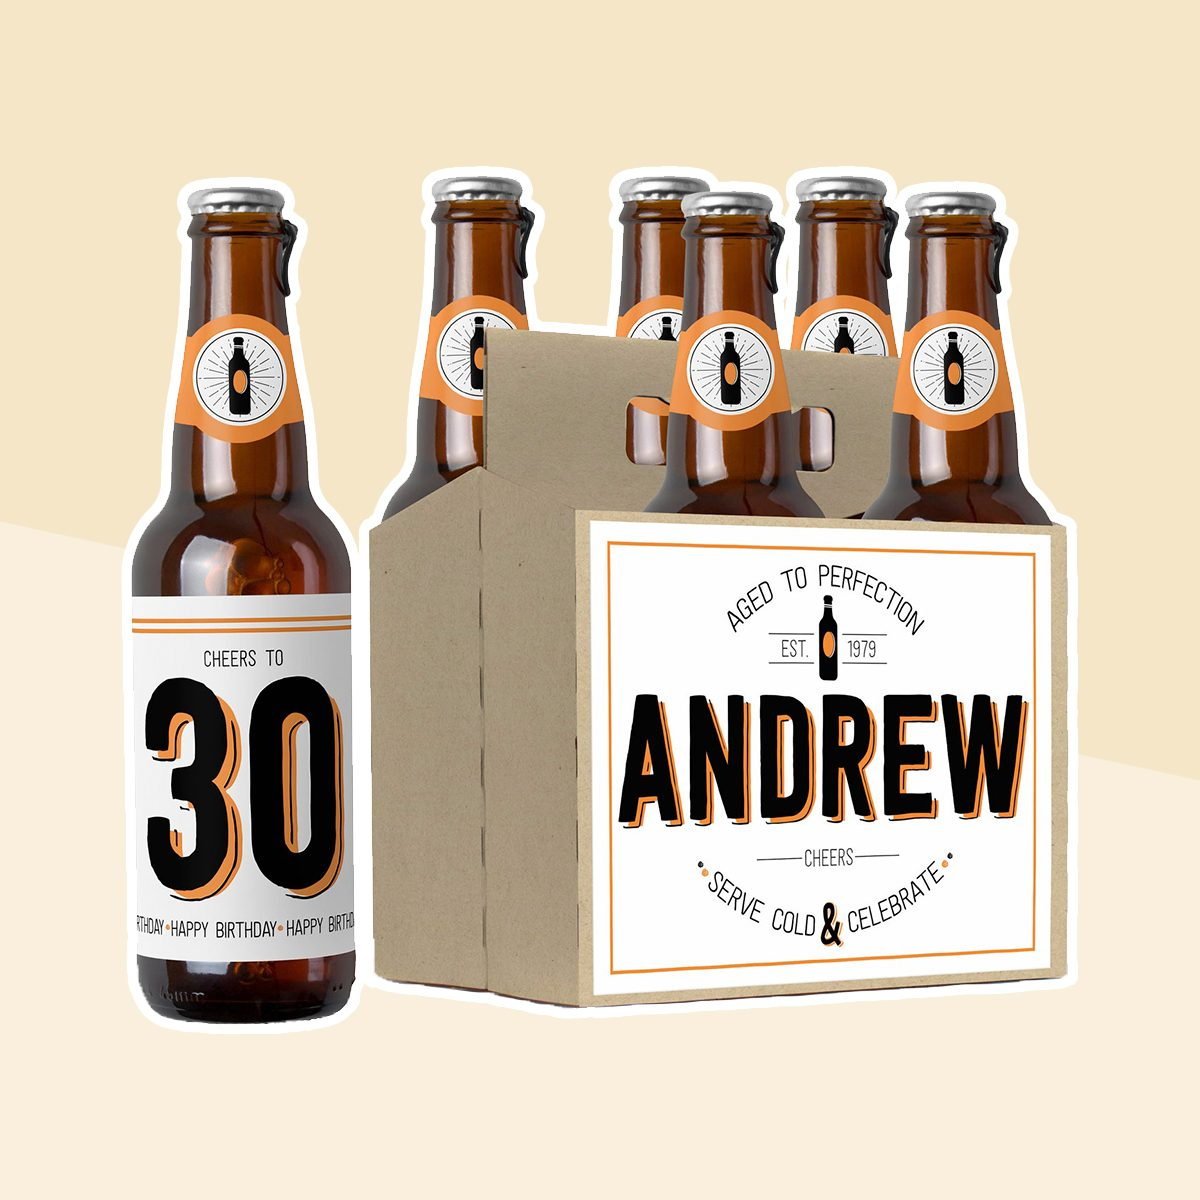 Happy Birthday Beer Labels, Birthday Gifts Under 20, 30th Birthday Beer, Personalized Birthday Labels, Birthday Gift for Him, Birthday Card